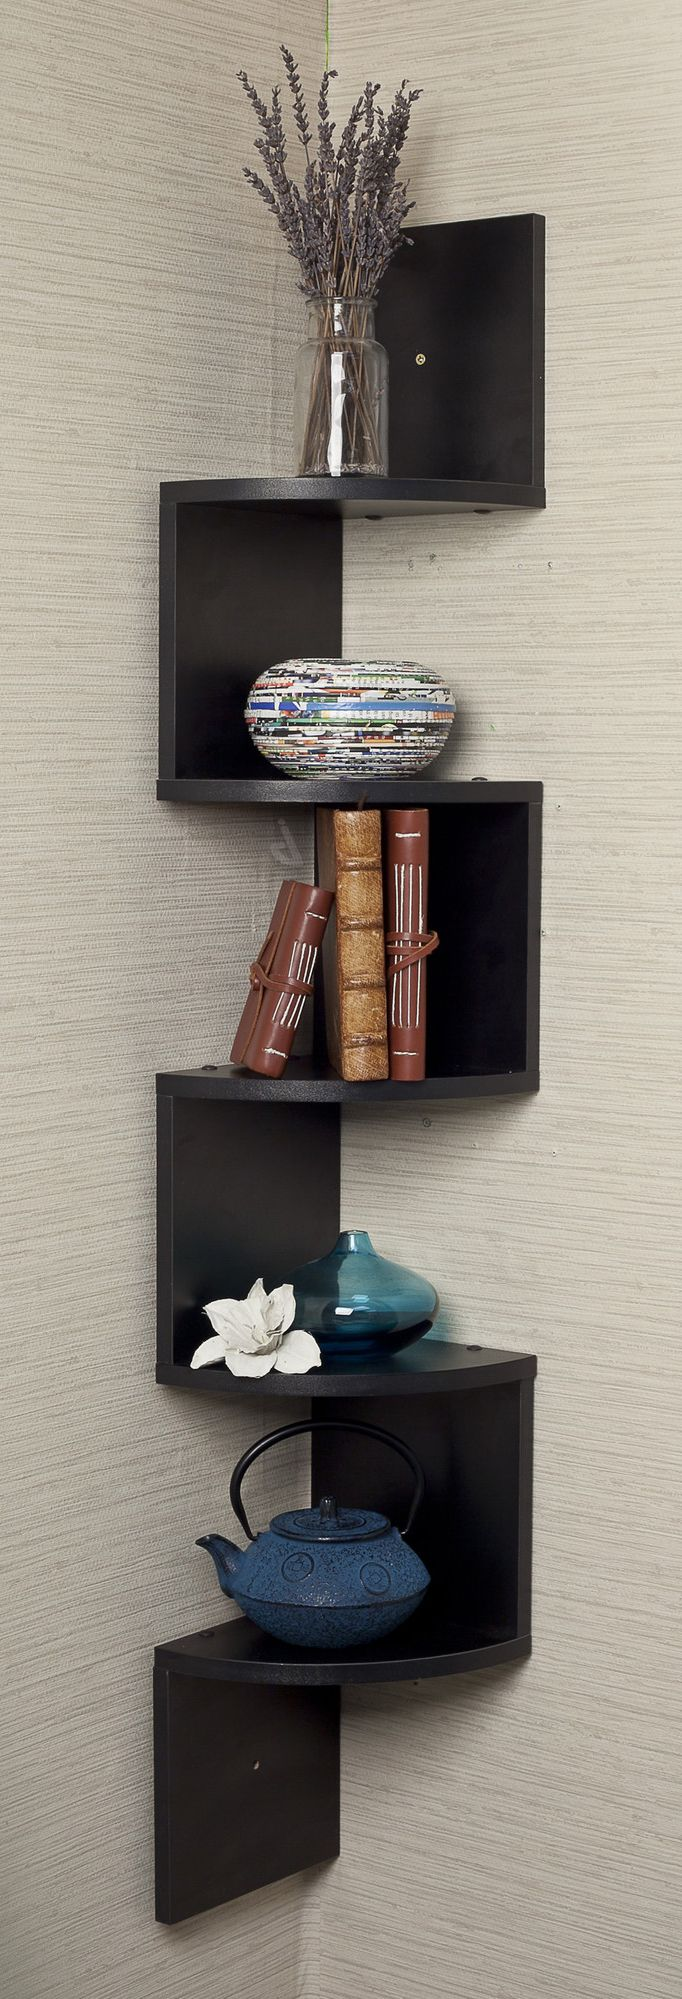 Wall Shelving For Living Room 17 Best Ideas About Corner Wall Shelves On Pinterest Corner Wall